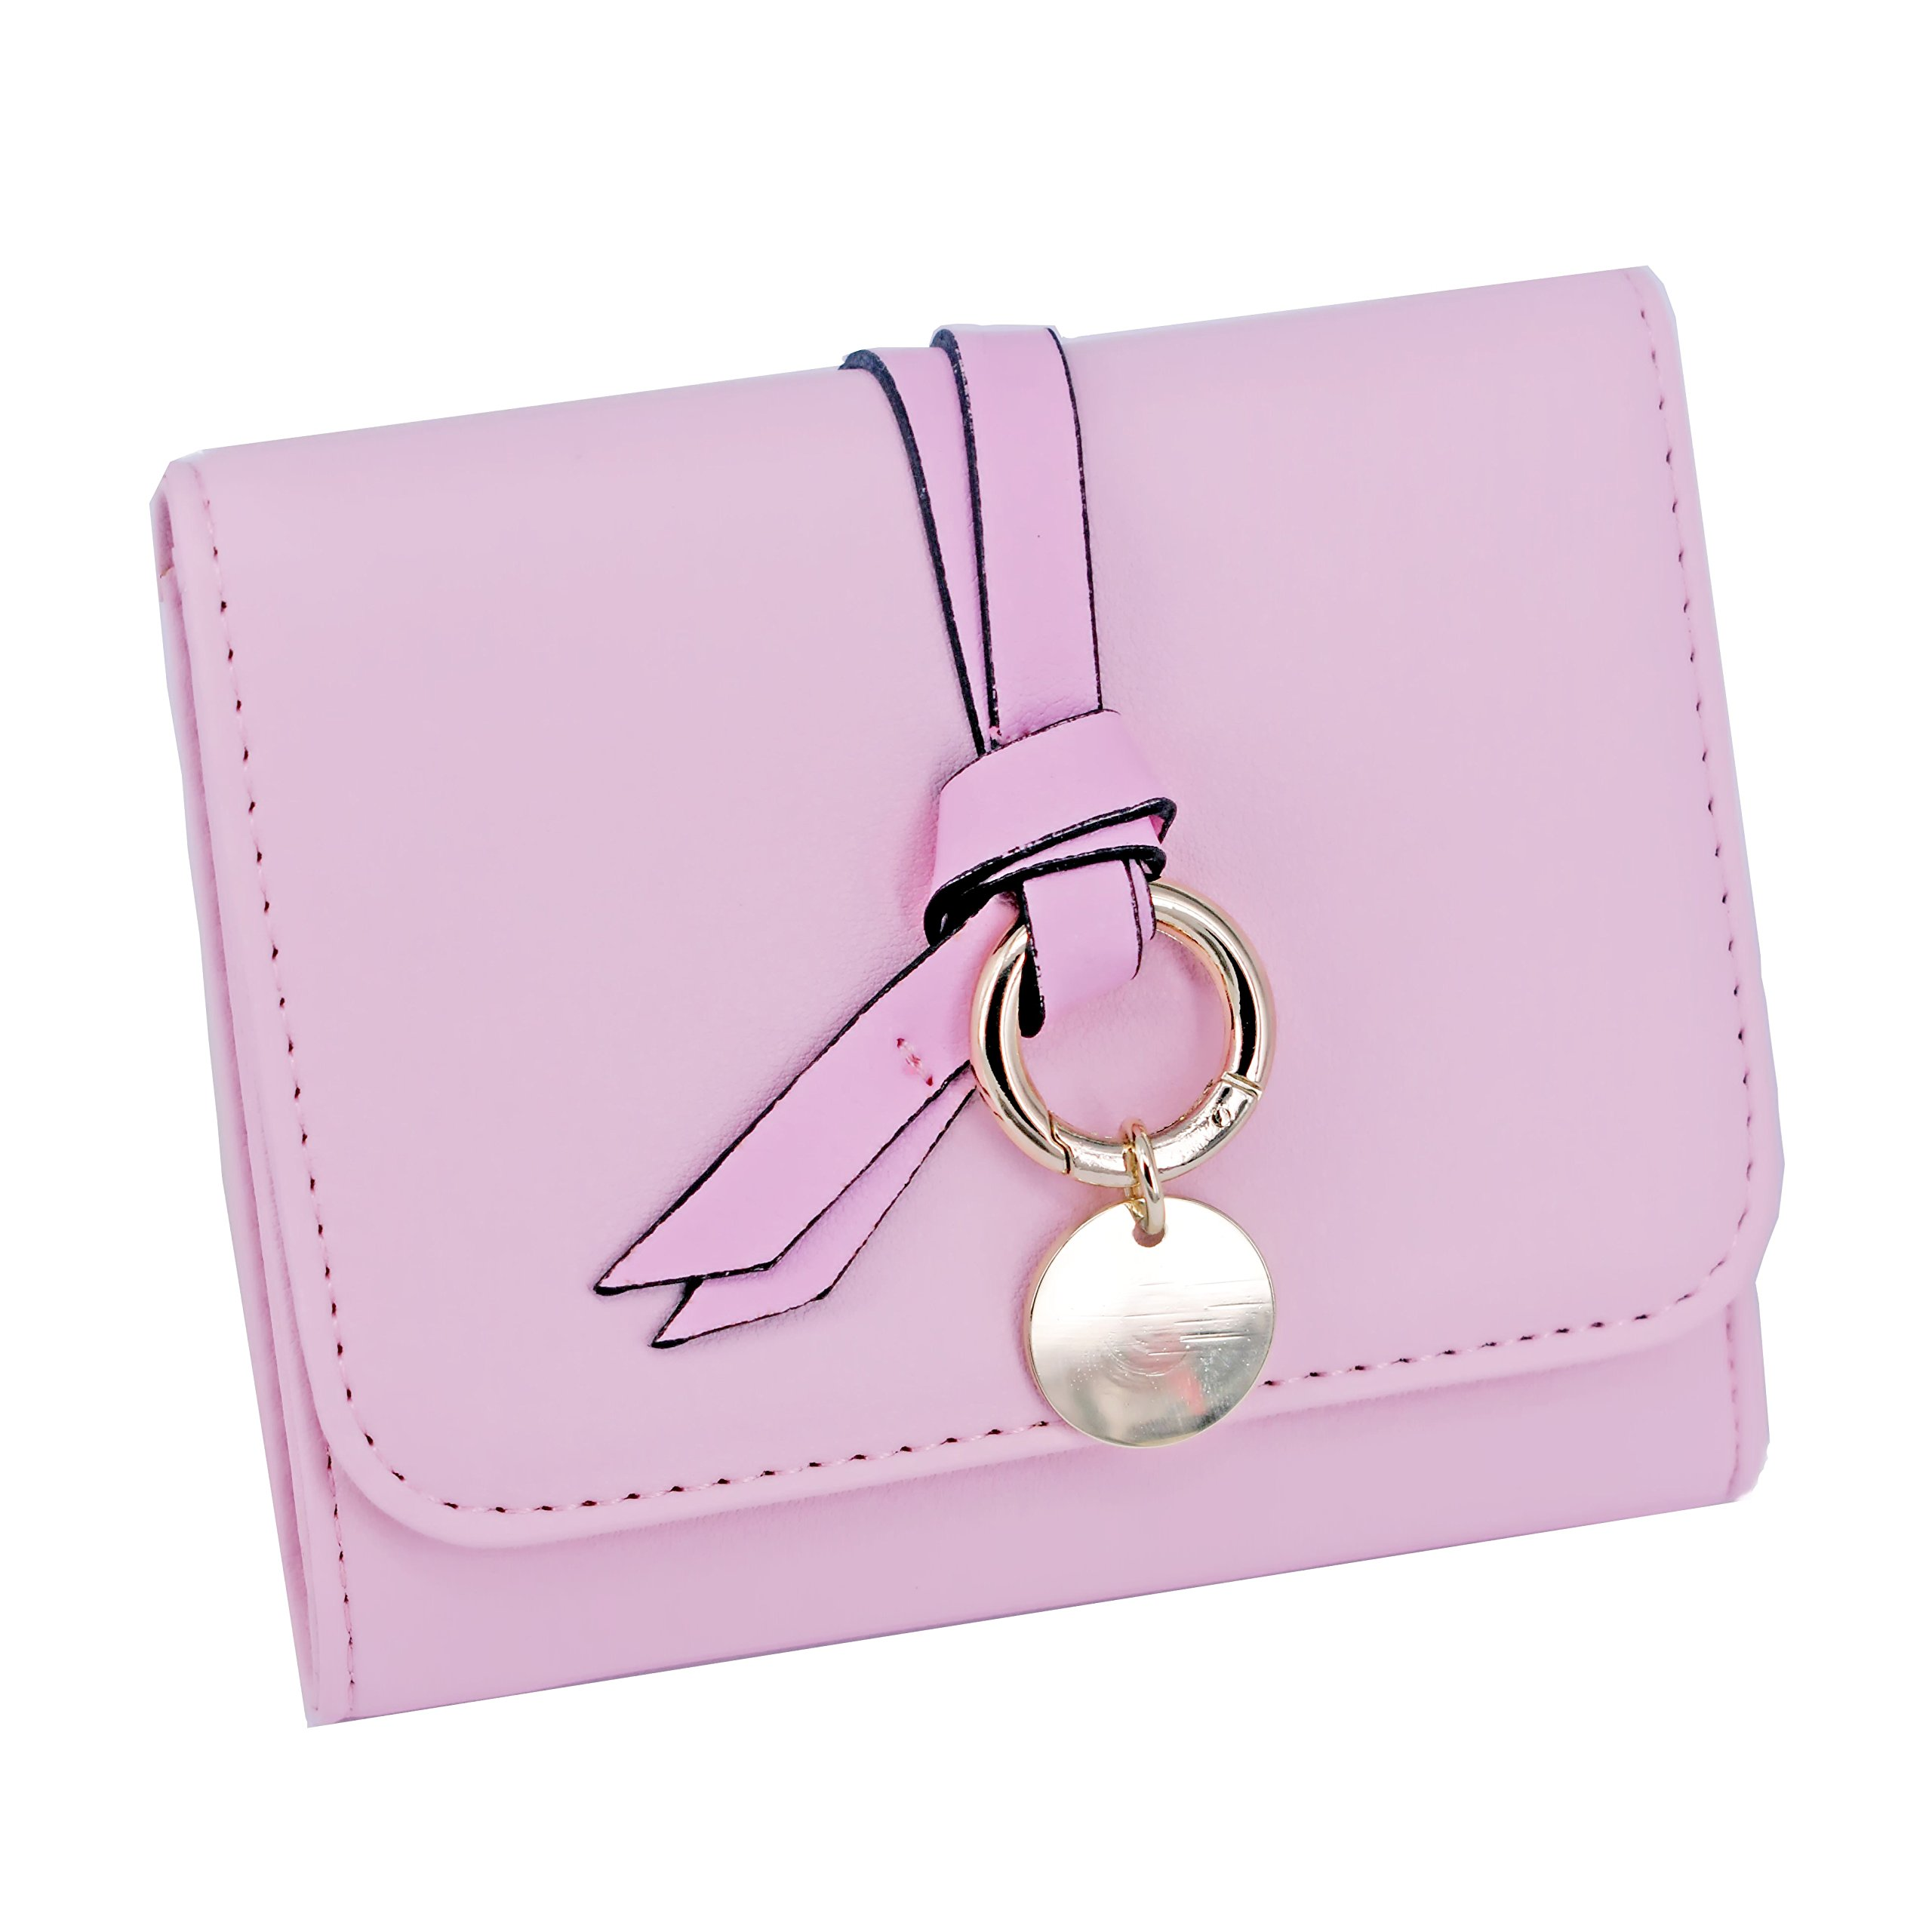 ABC STORY Womens Cute Pink Purse Card Holder Small Trifold Wallets For Teen Girls by ABC STORY (Image #1)